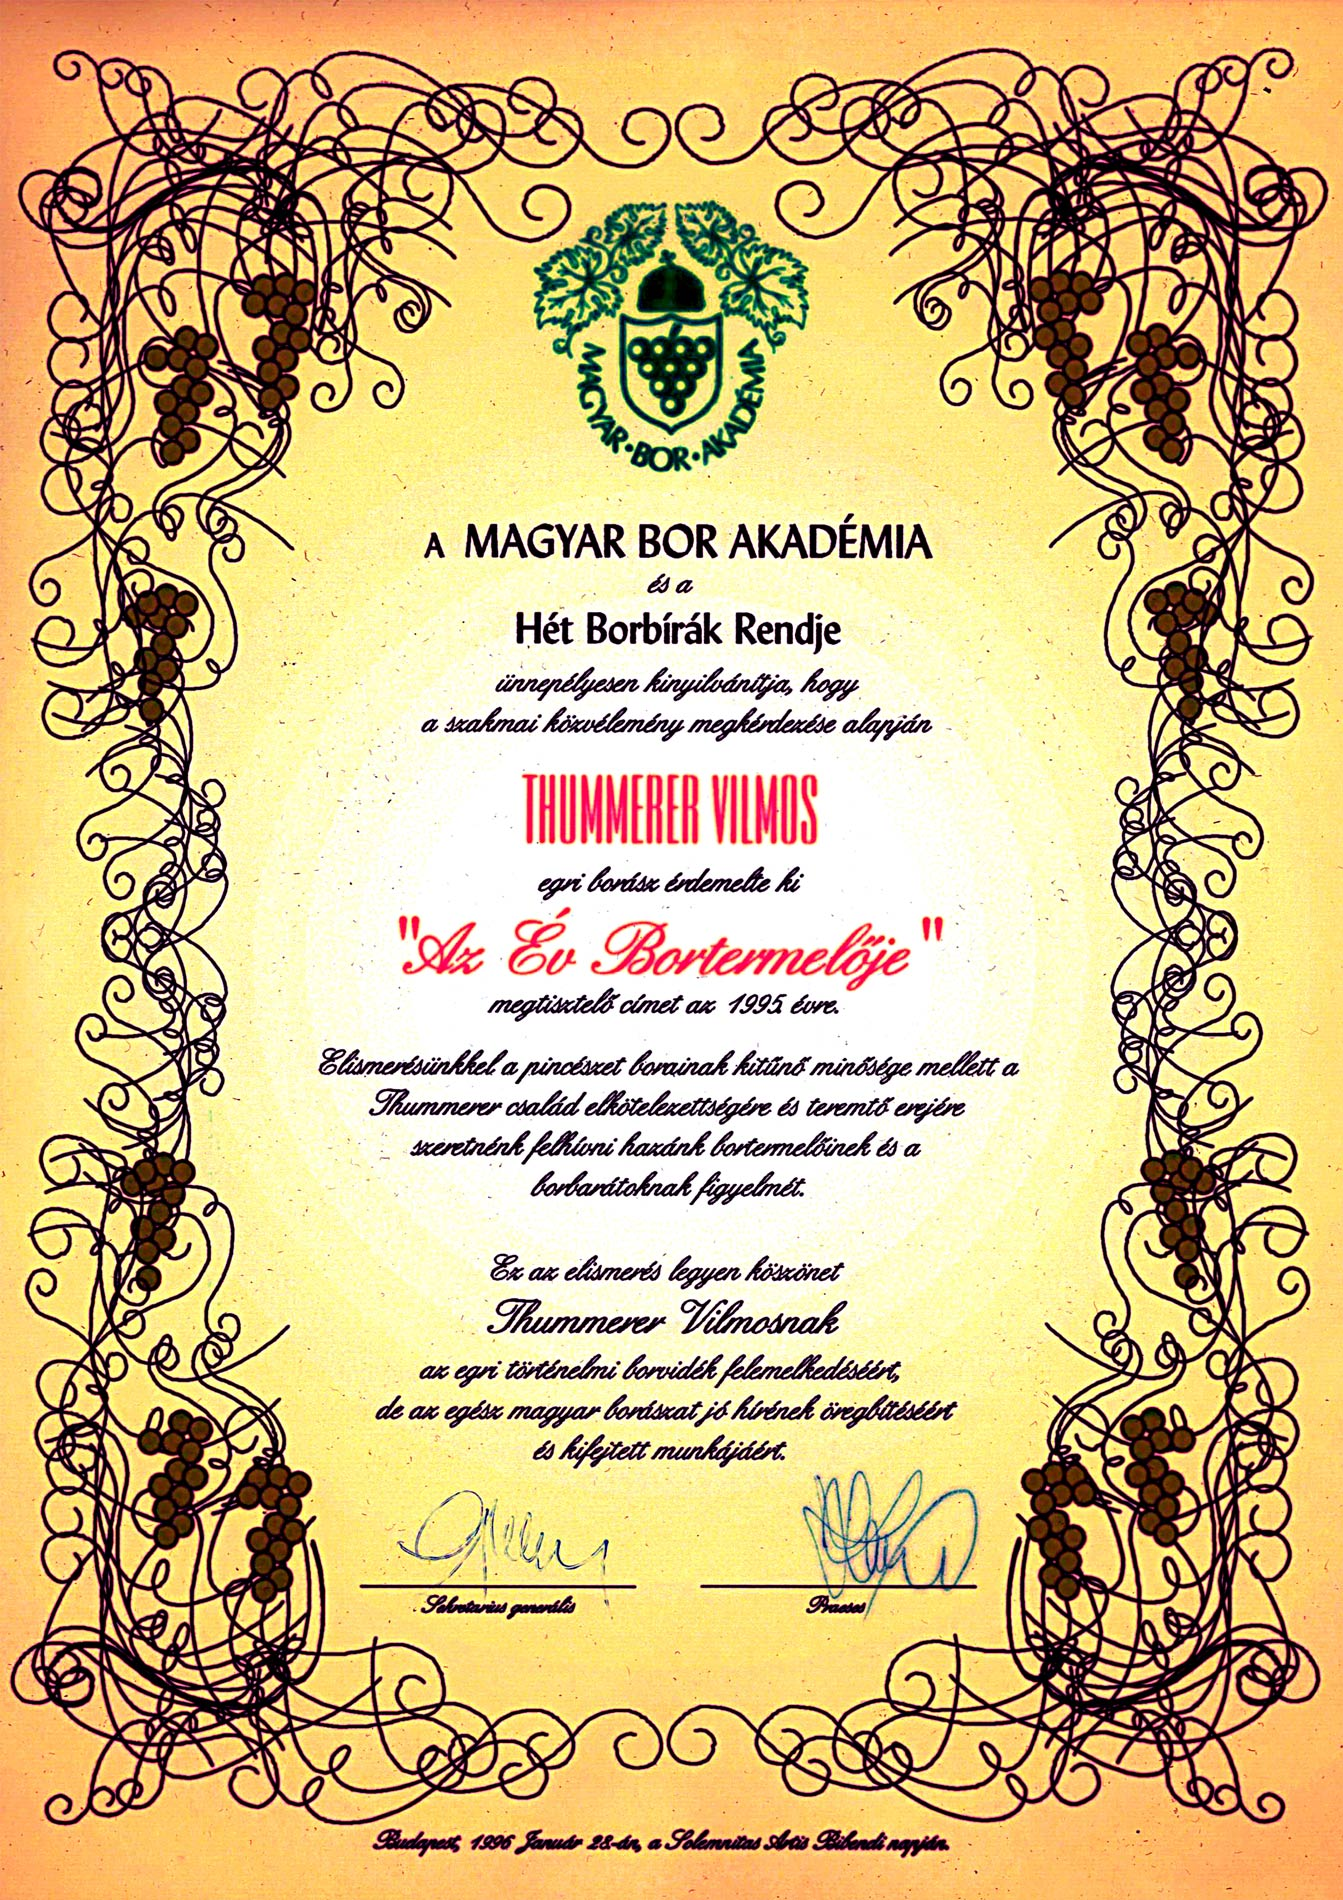 The Wine Producer of the Year in 1995 in Hungary